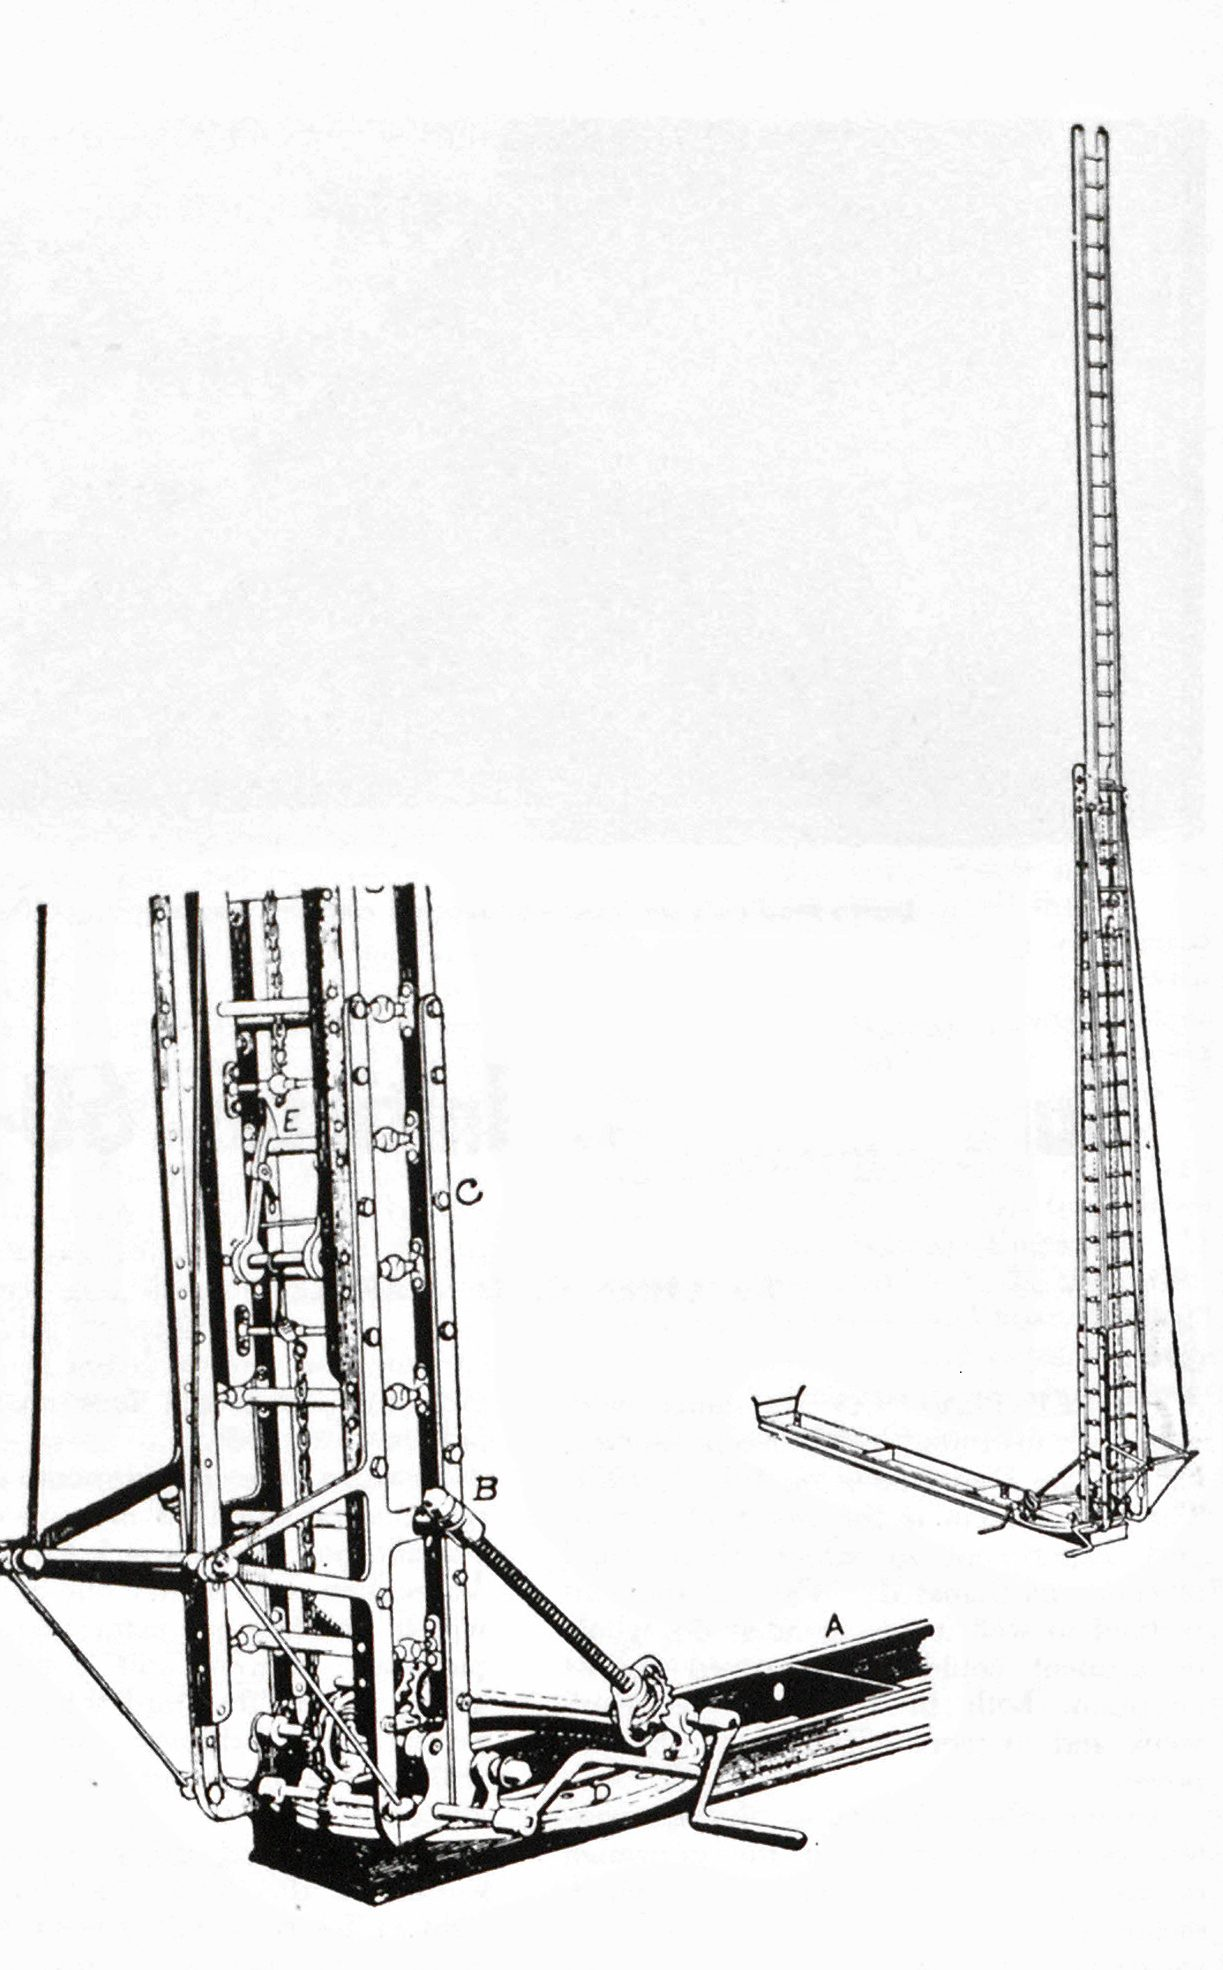 The Legend Of The Aerial Ladder